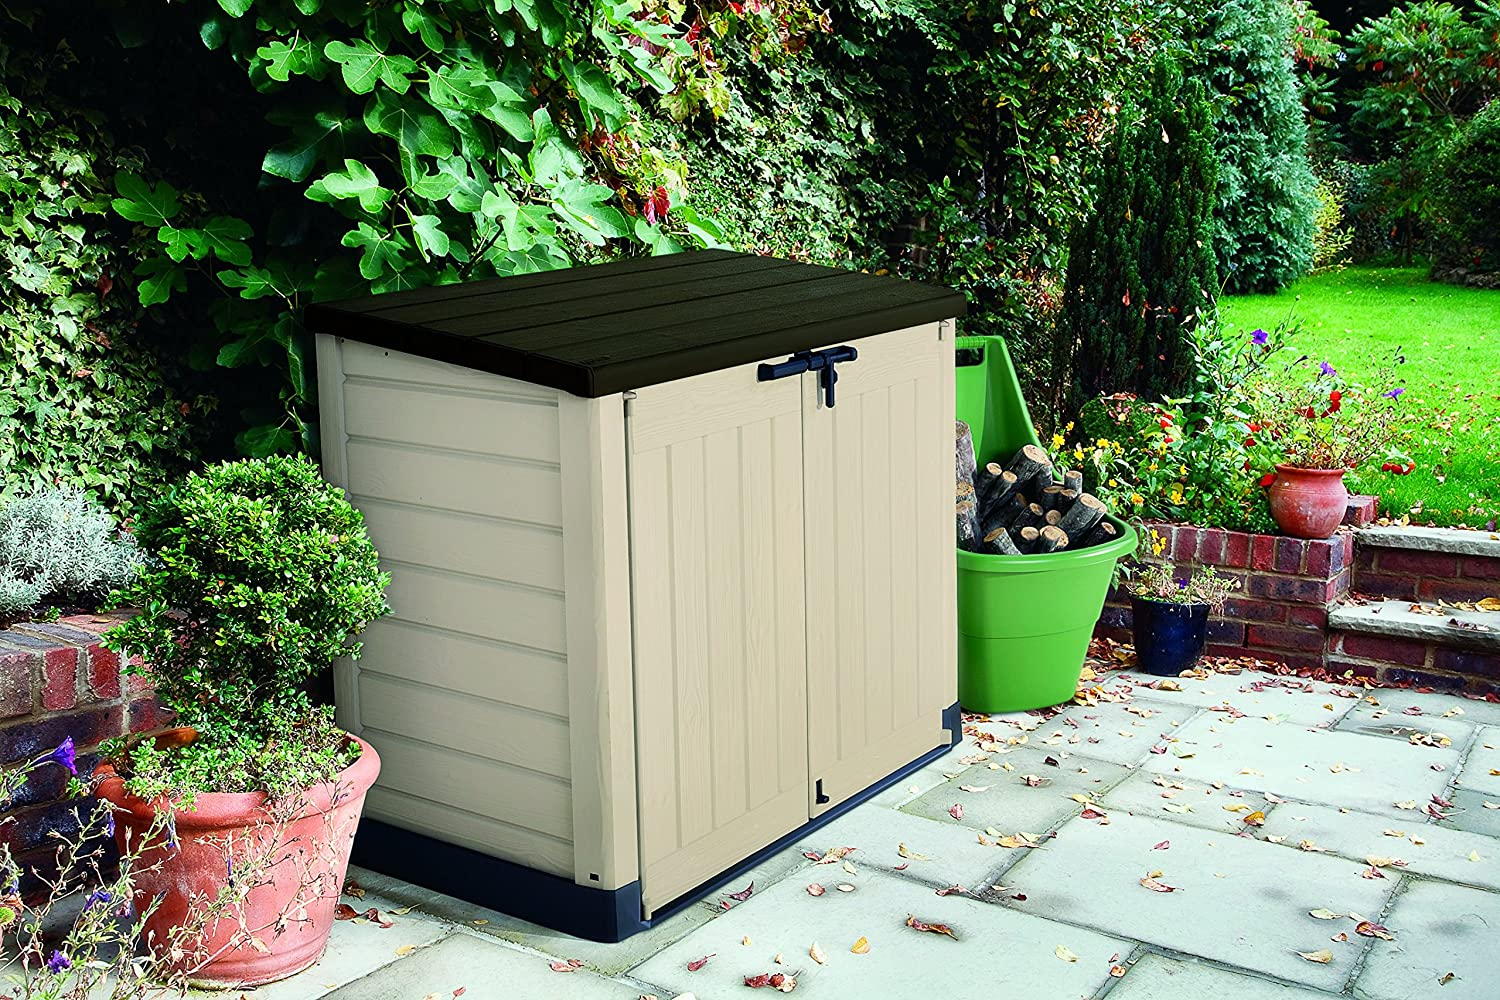 Keter store it out max plastic outdoor garden storage shed - Brown plastic garden sheds ...